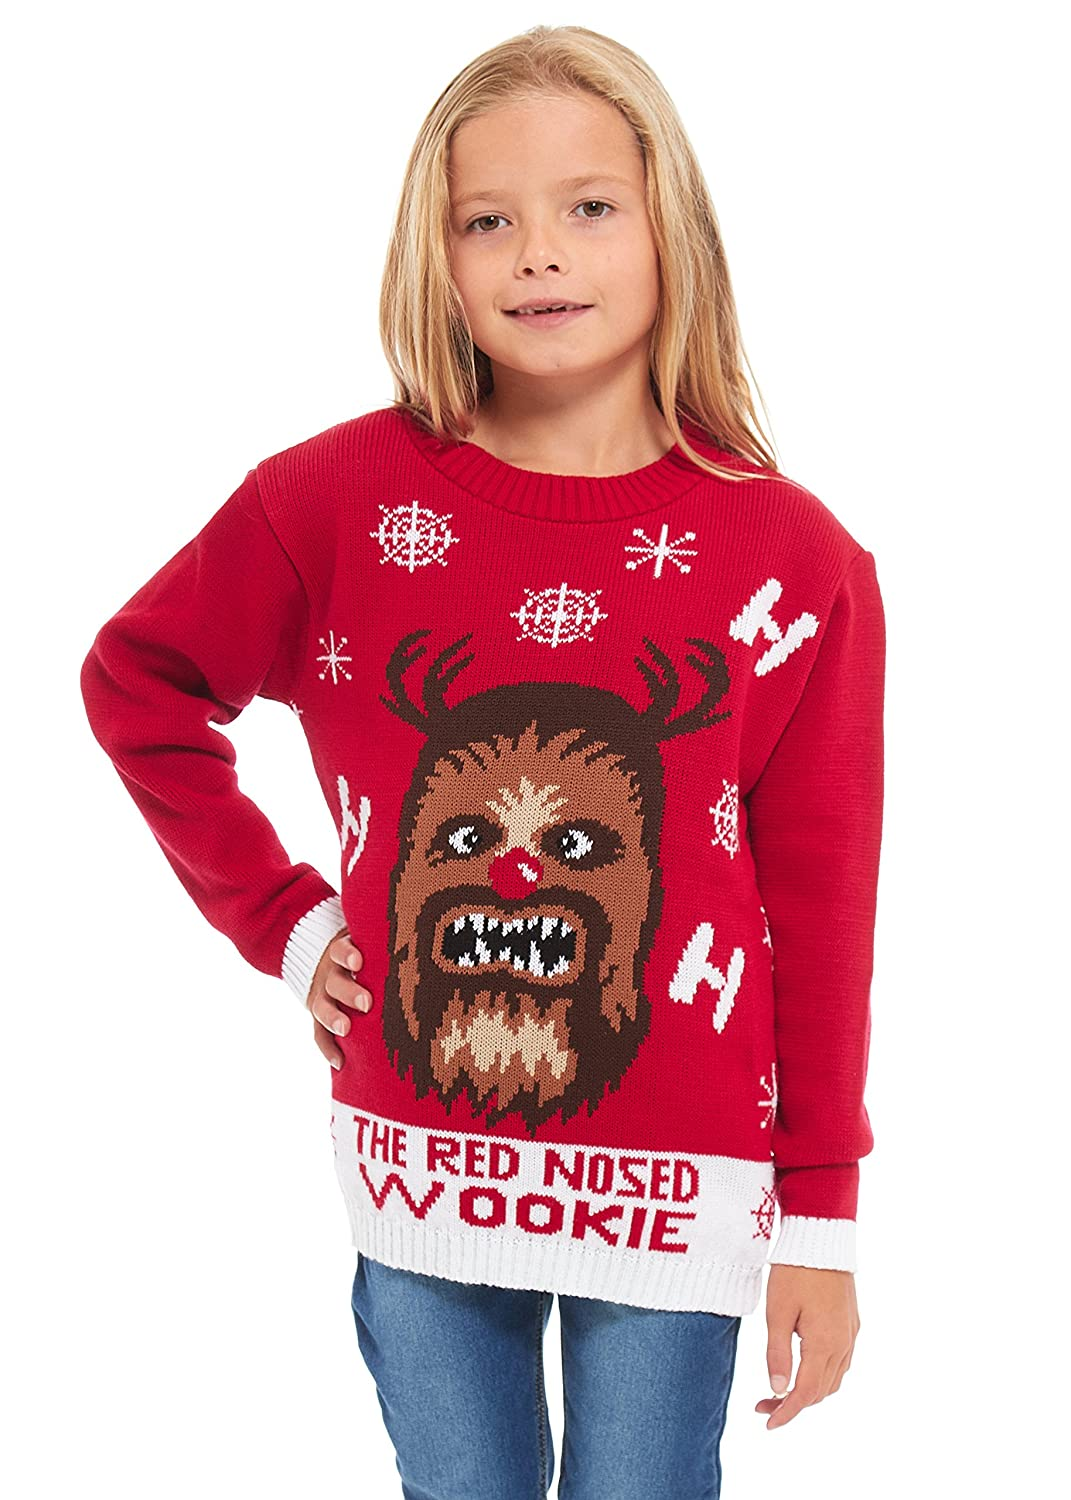 New Camp Ltd Girls Kids Boys Children Unisex Christmas Xmas Knitted Novelty Retro Elf Football Jumper Sweater Christmas Xmas 2018 Exclusively to for Ages 2-14 Years